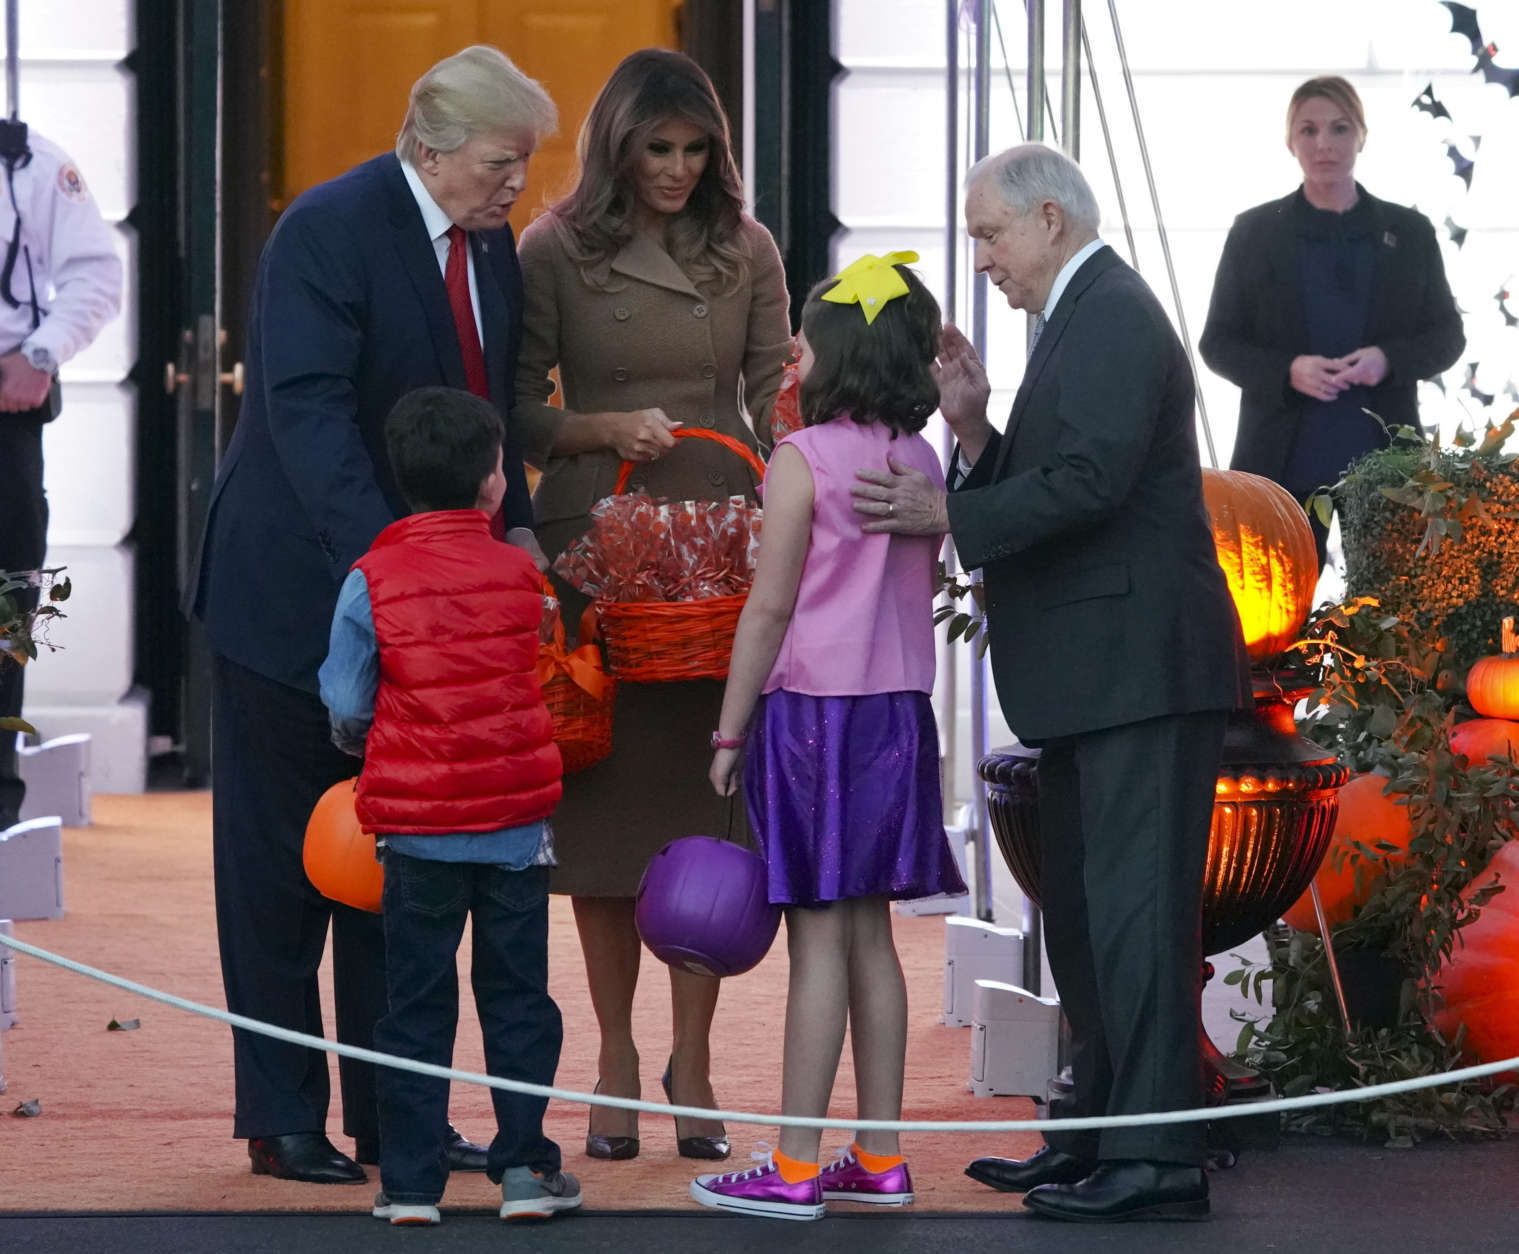 President Donald Trump and first lady Melania Trump meet Attorney General Jeff Sessions' grandchildren as Trump welcomes children from the Washington area and children of military families to trick-or-treat celebrating Halloween at the South Lawn of the White House in Washington, Monday, Oct. 30, 2017. (AP Photo/Pablo Martinez Monsivais)